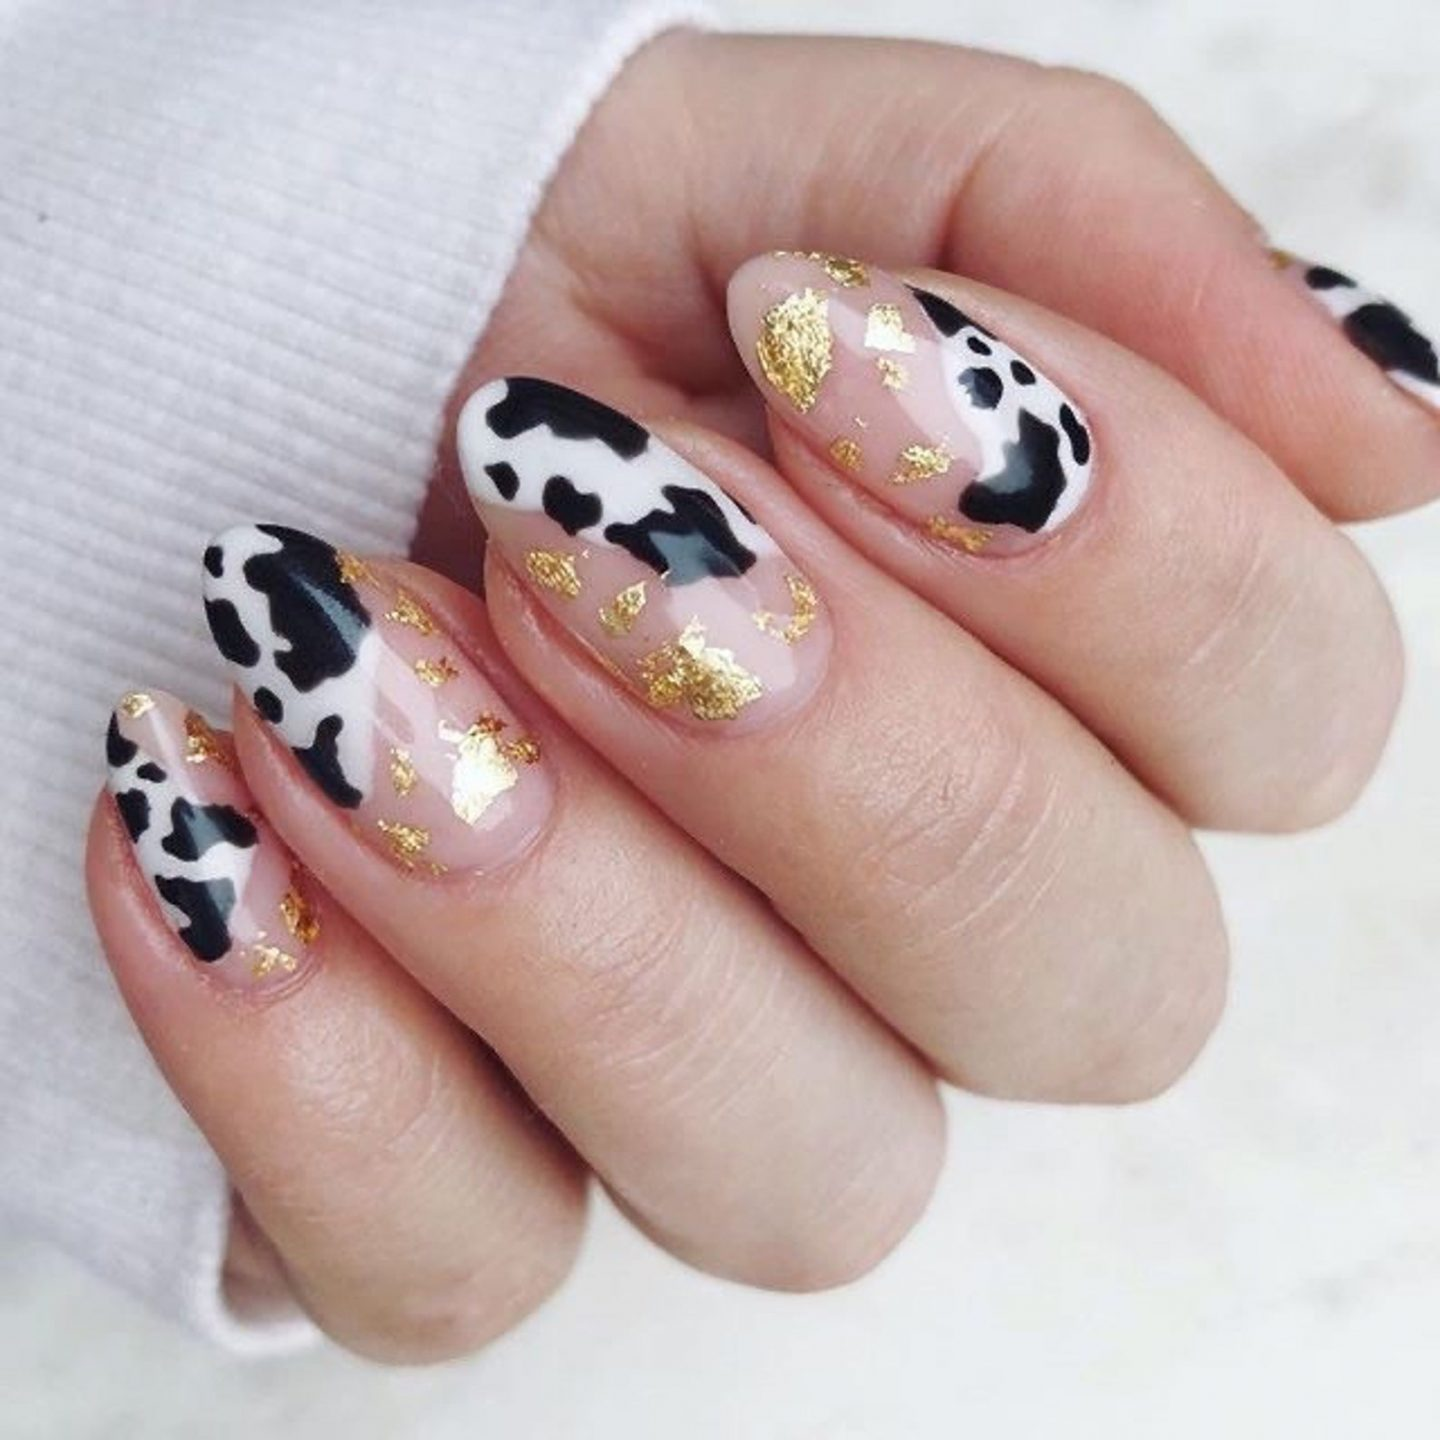 Cute cow print nails with gold foil